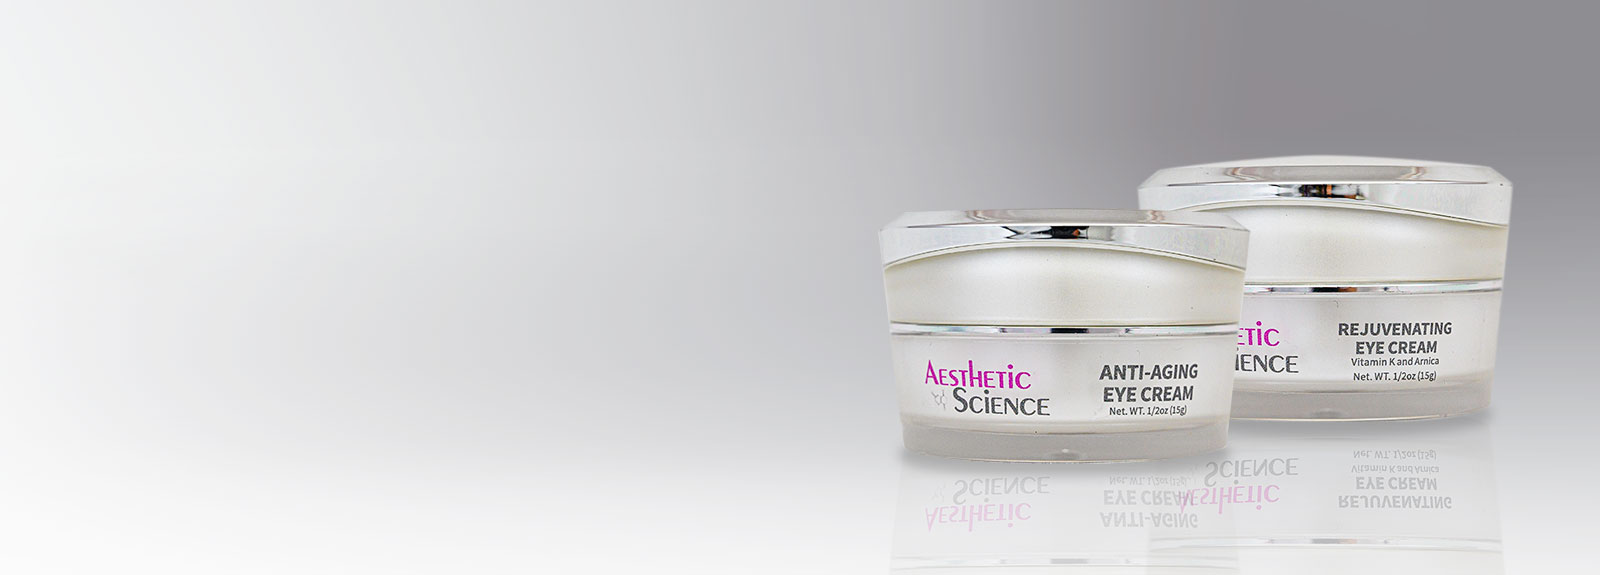 Aesthetic Science Skincare's professional assorted eye products from their professional skincare product line